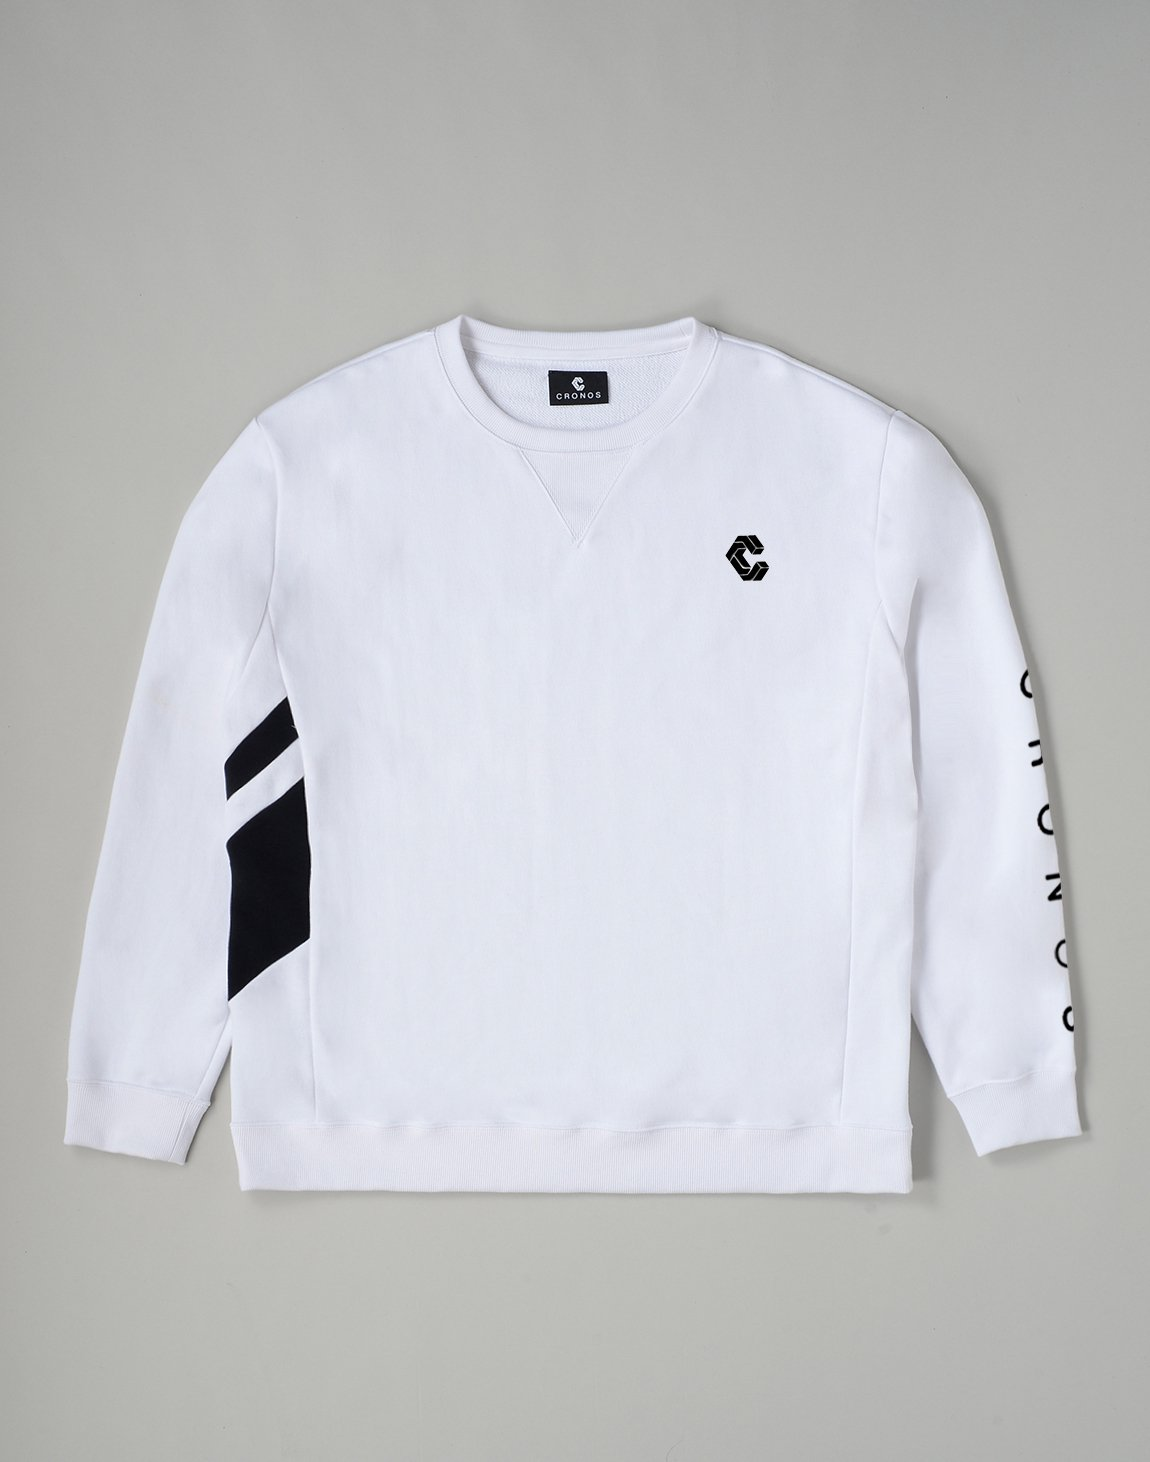 <img class='new_mark_img1' src='https://img.shop-pro.jp/img/new/icons1.gif' style='border:none;display:inline;margin:0px;padding:0px;width:auto;' />CRONOS SLANTED LINE SWEATSHIRT【WHITE】